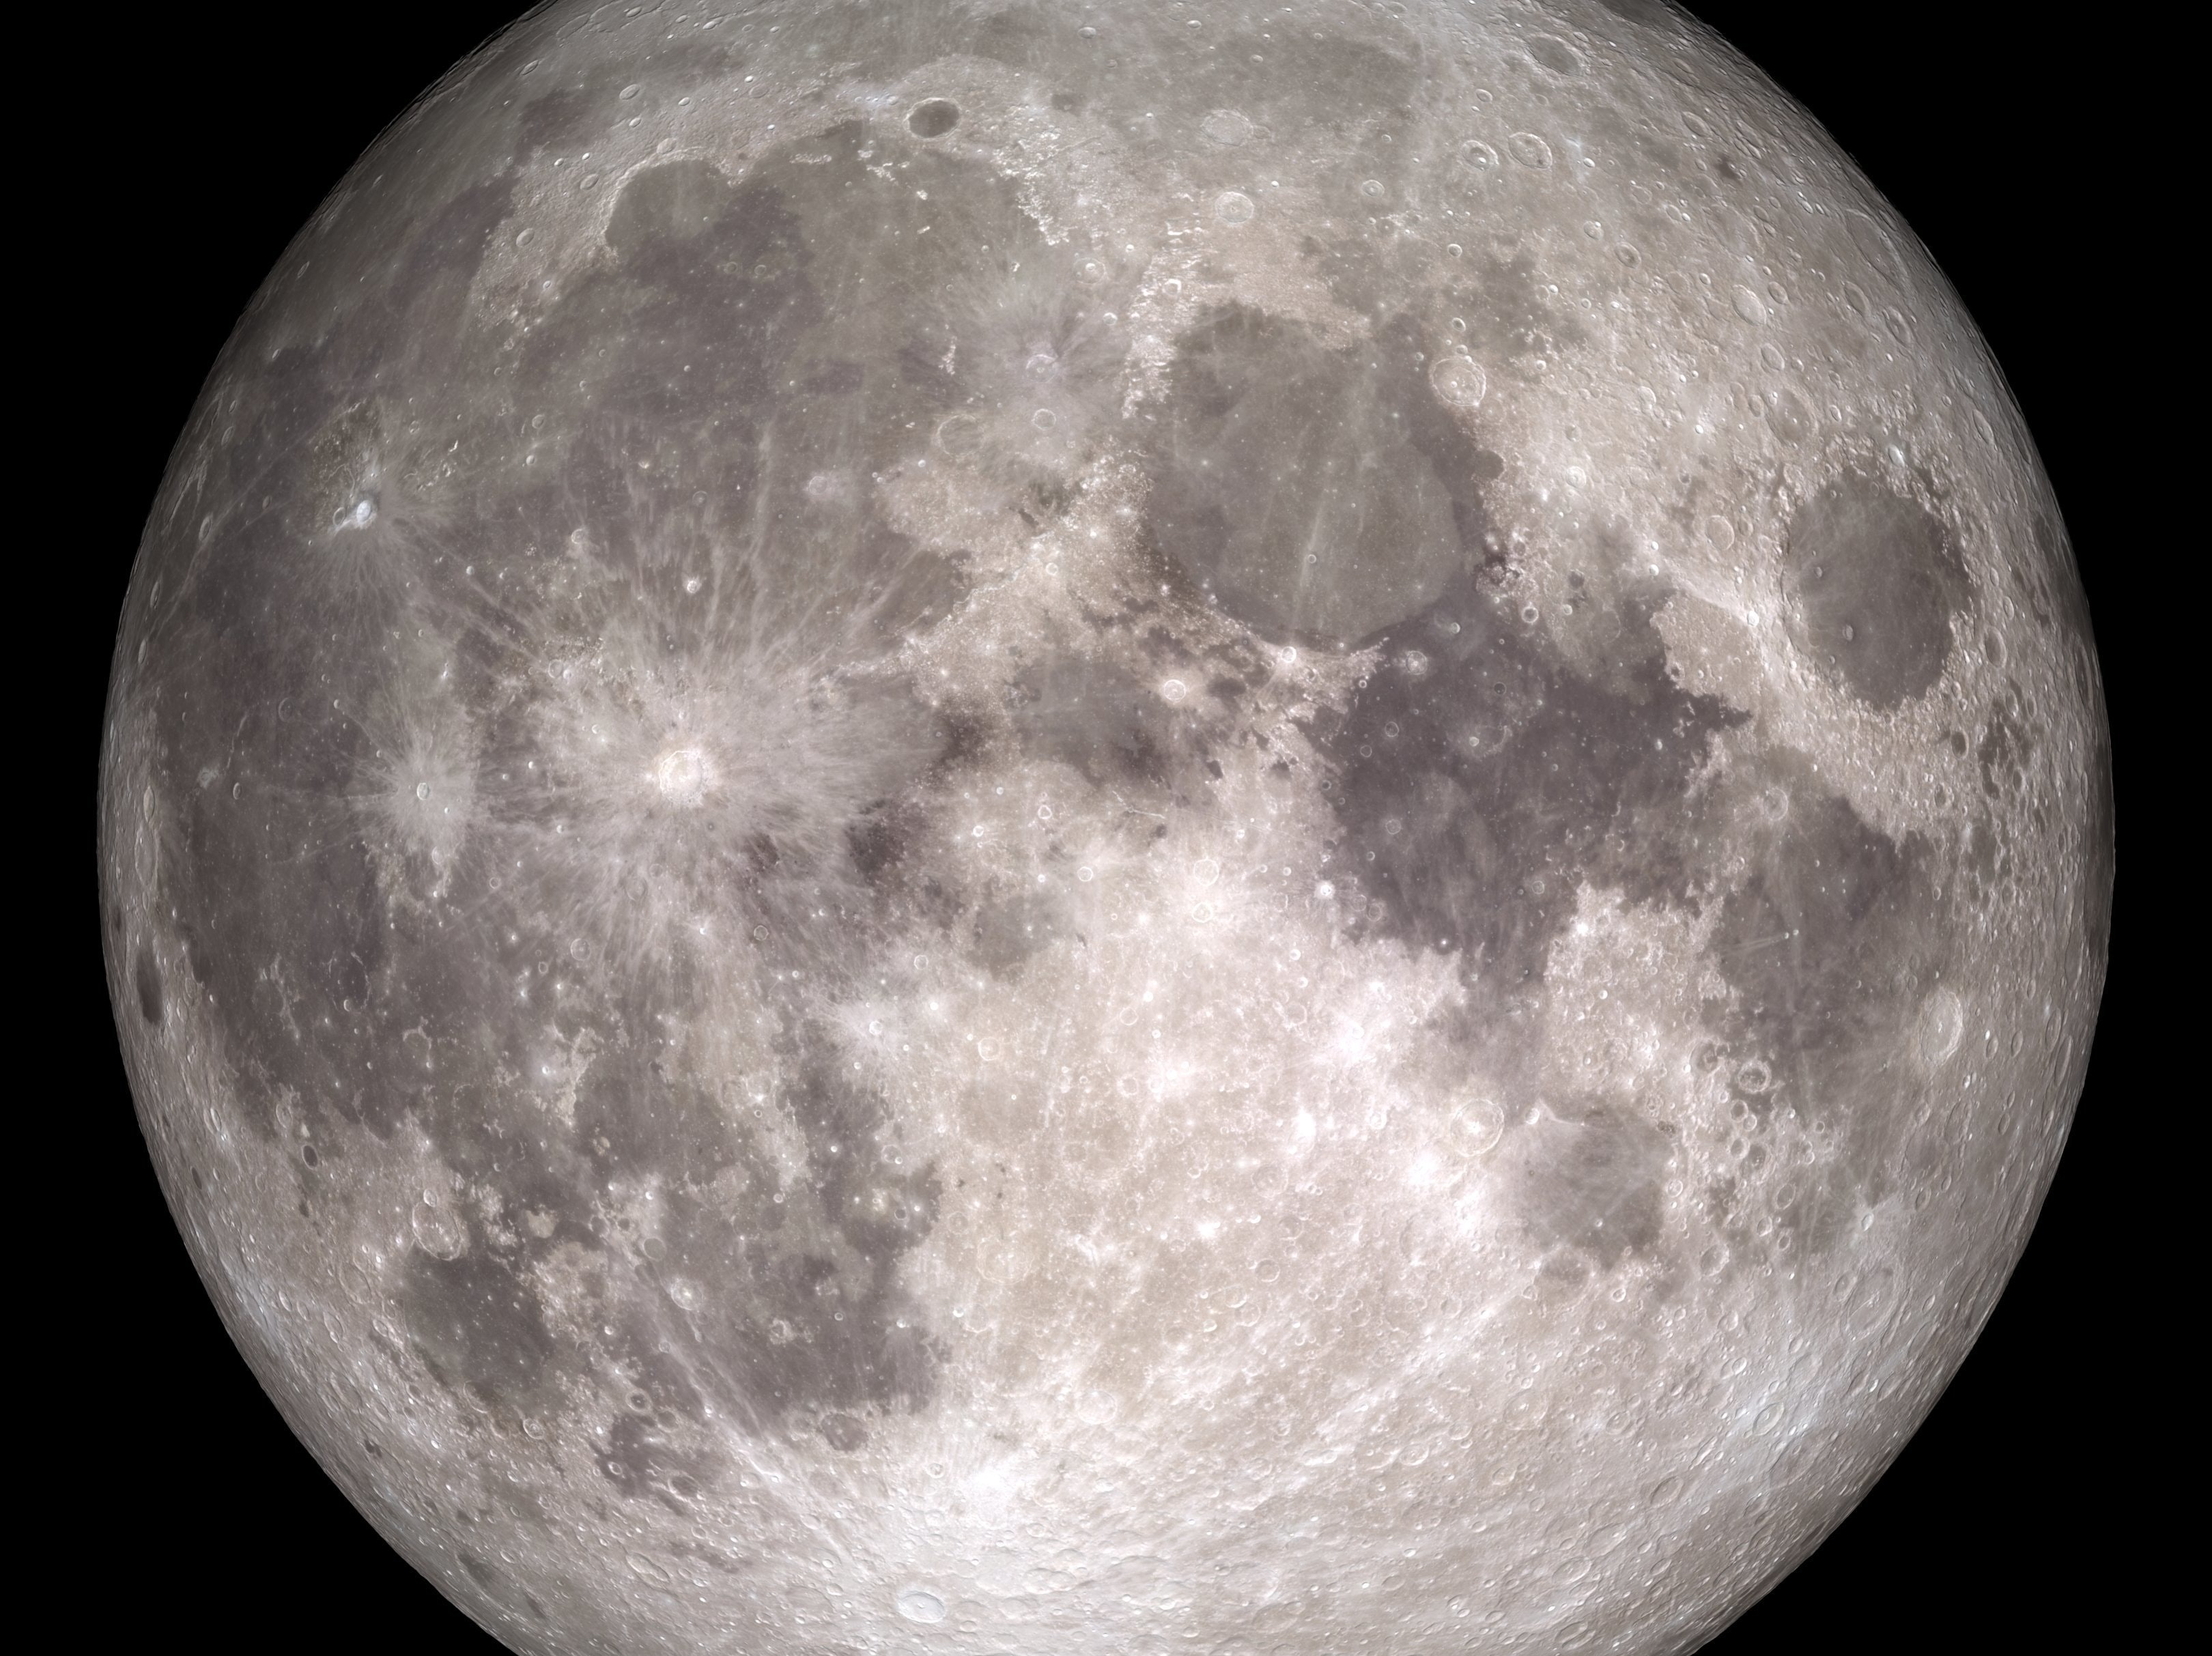 Celebrate International Observe the Moon Night on October 8